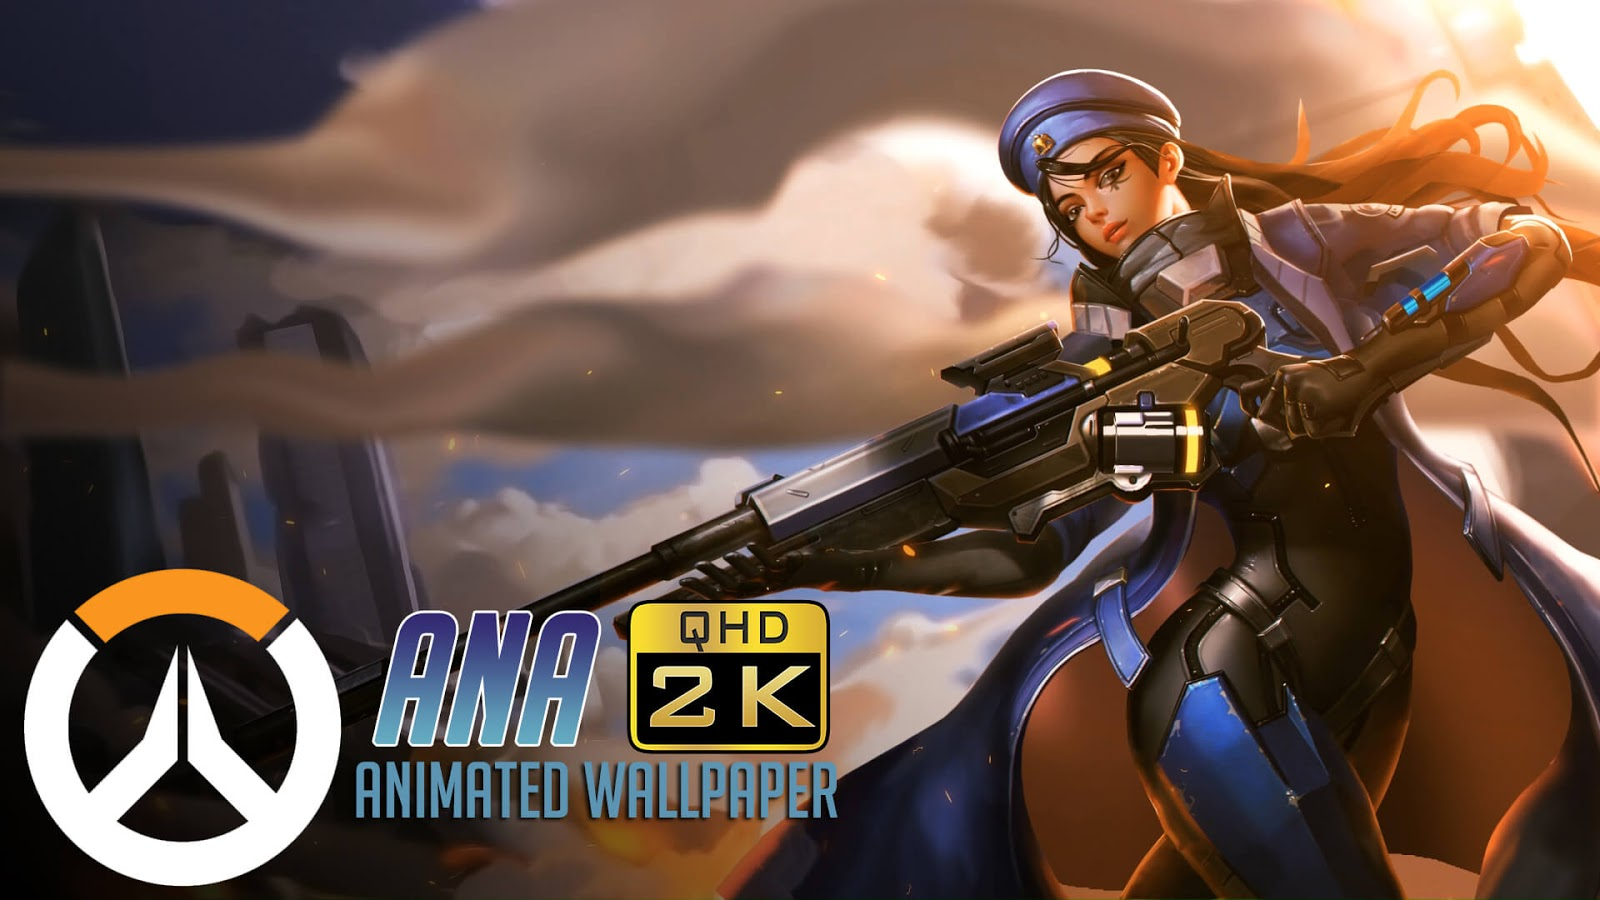 Ana | Animated Wallpaper QHD 1440p - Overwatch [Wallpaper Engine Free]